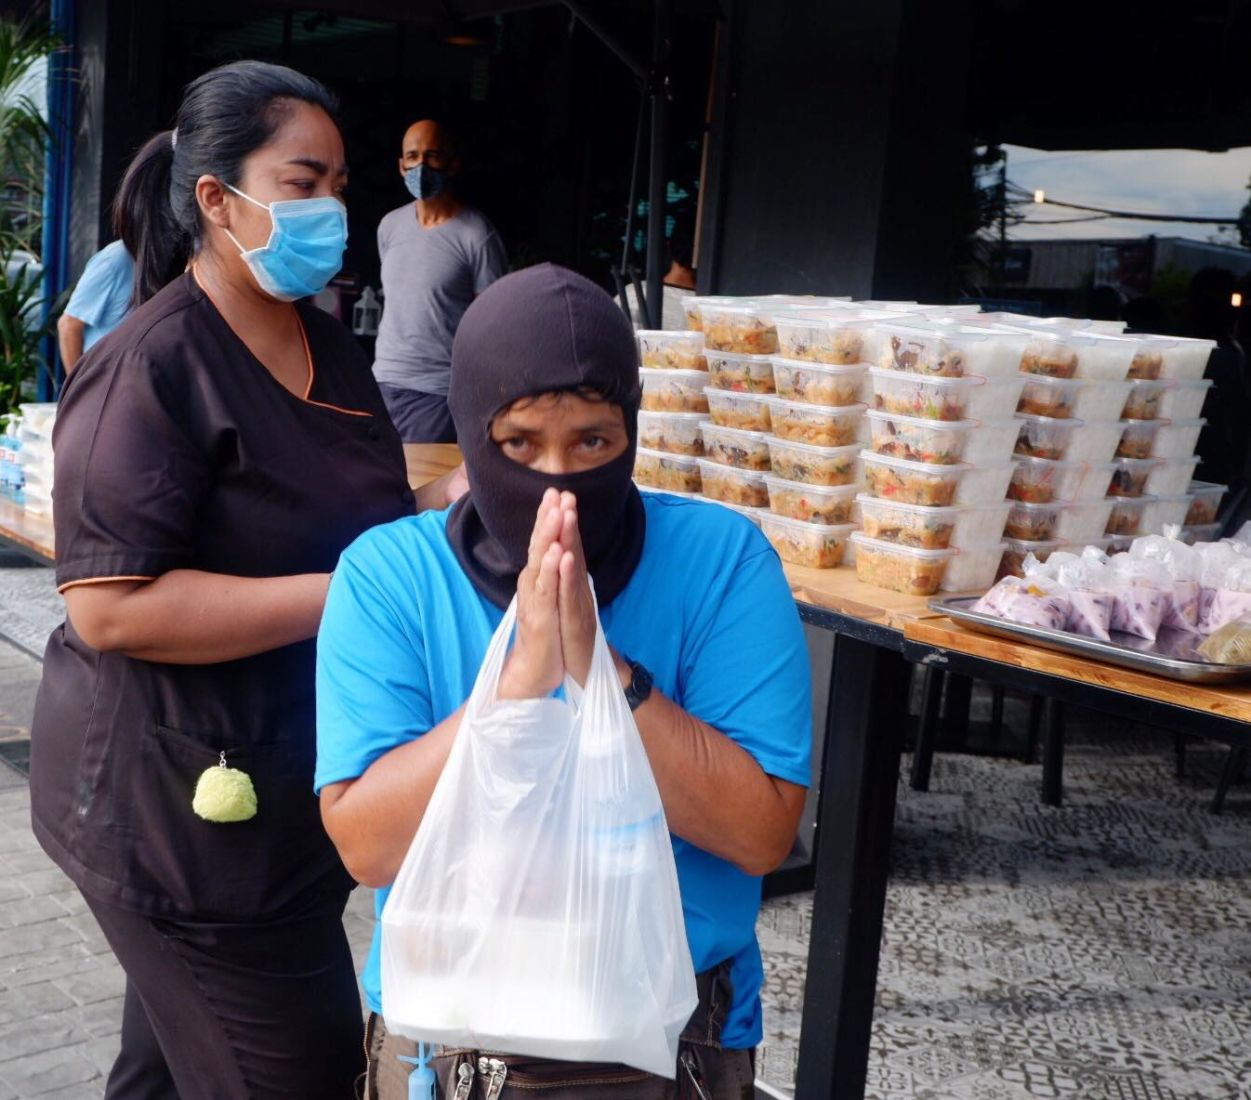 Phuket chef hands out over 2,000 free meals | The Thaiger